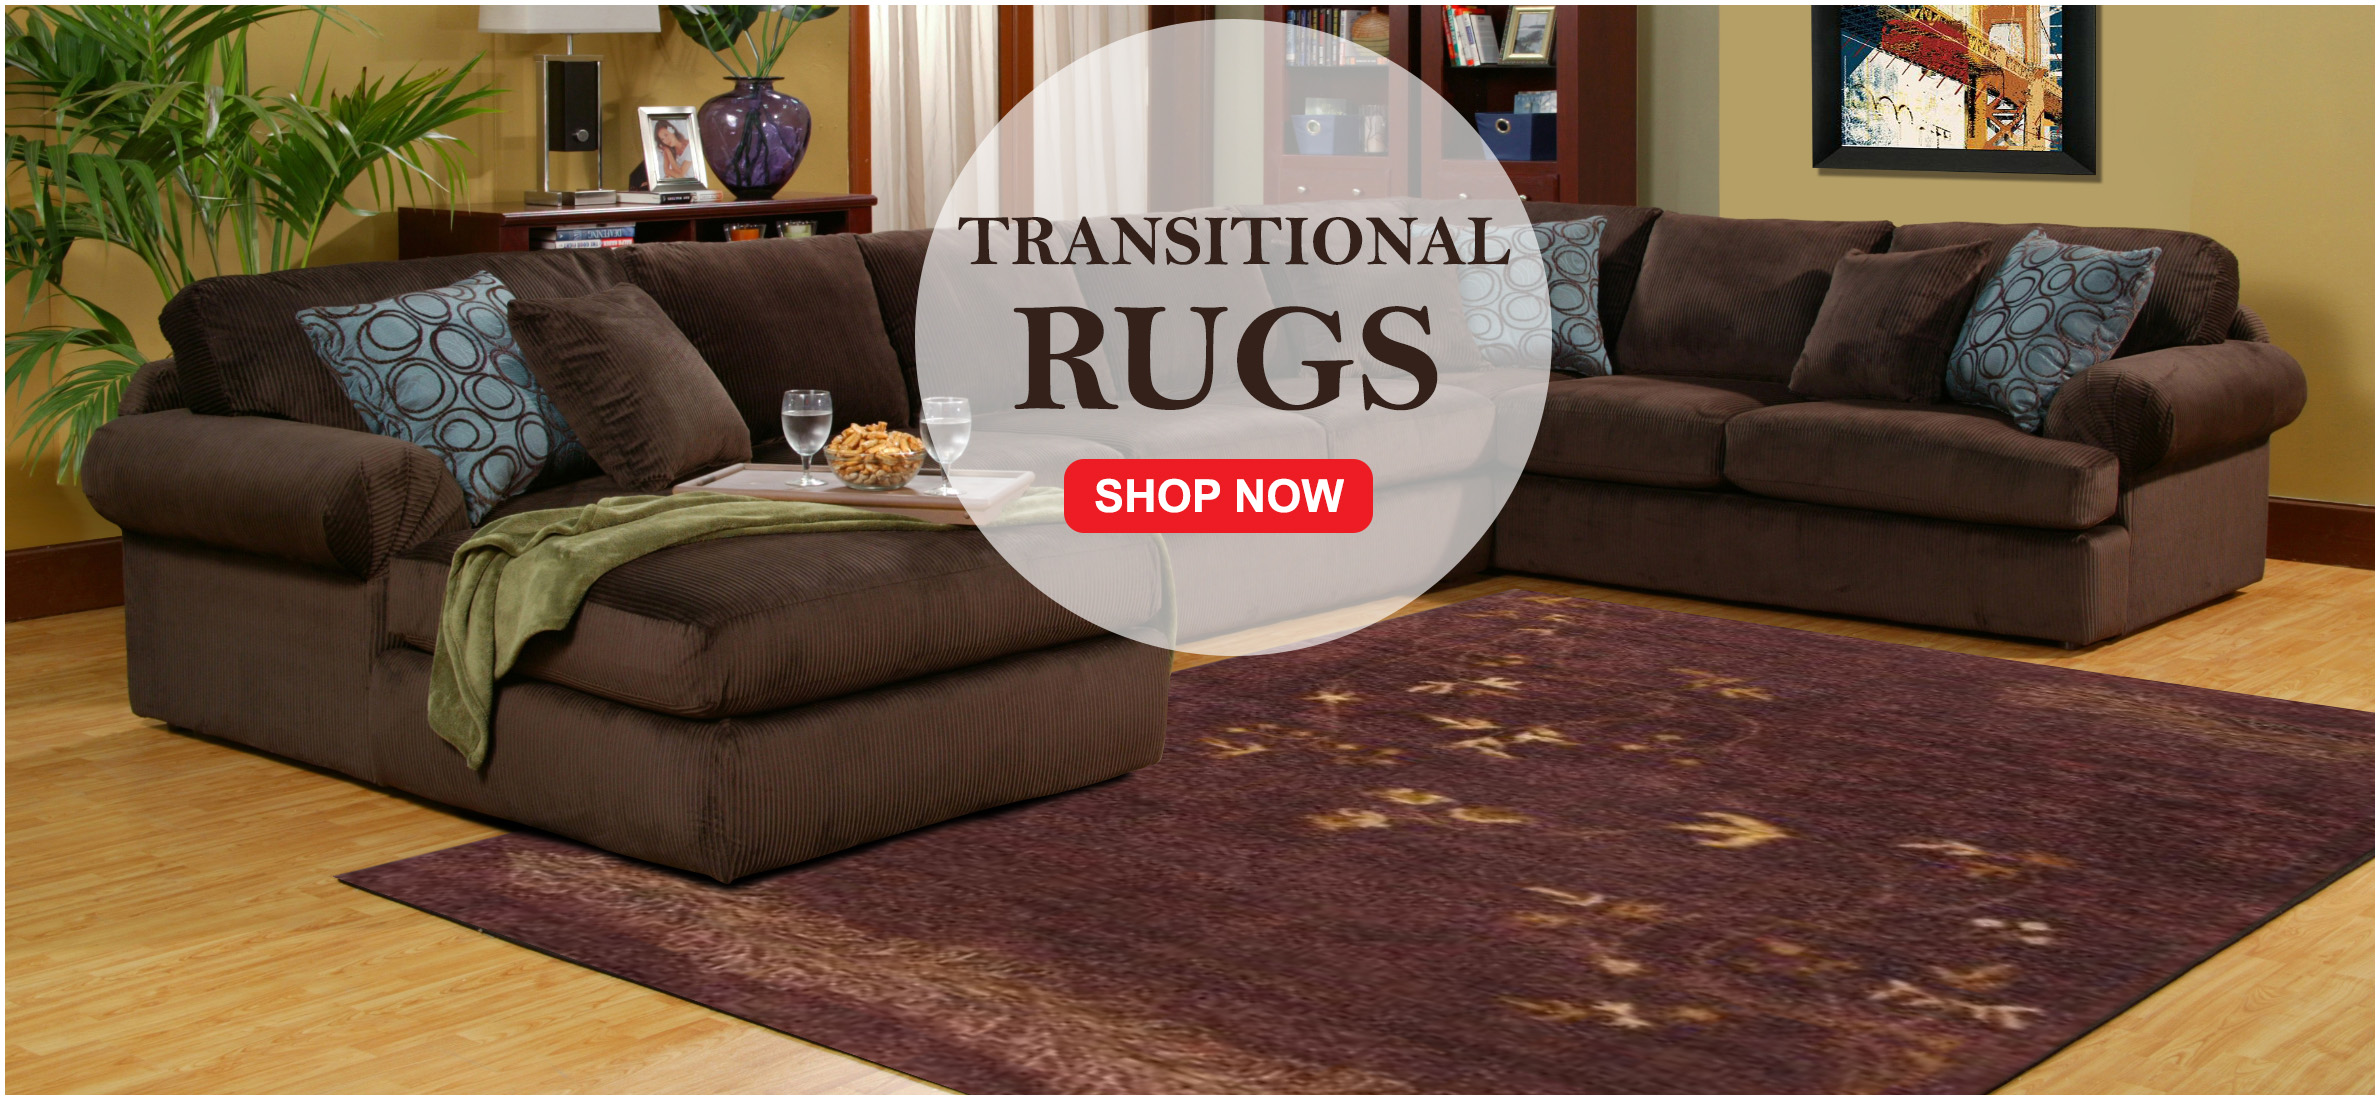 Transitional Floor Rugs Give Your Home A Clic Look